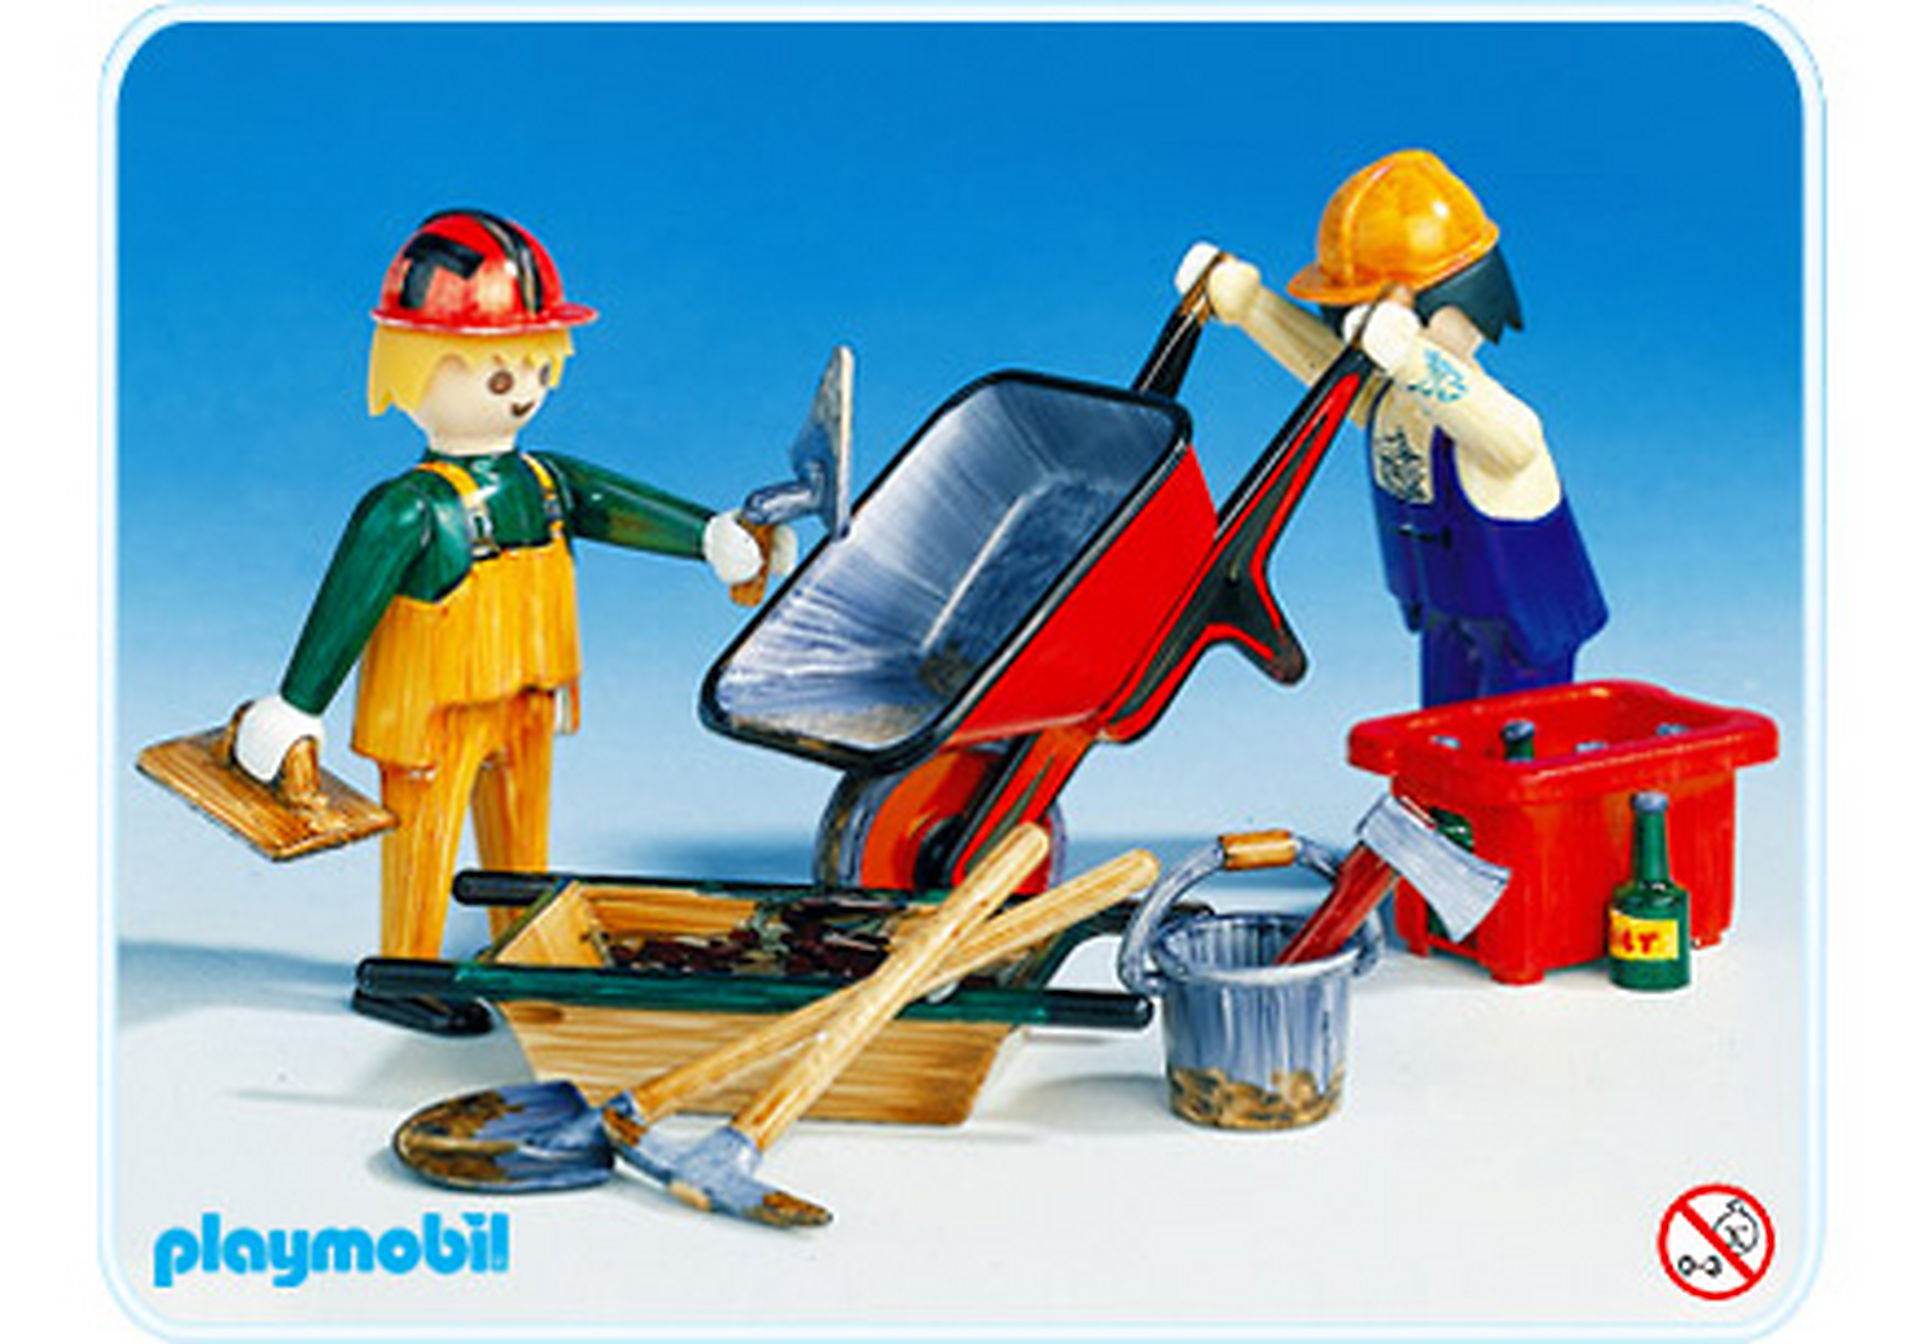 http://media.playmobil.com/i/playmobil/3690-A_product_detail/2 ouvriers avec brouette